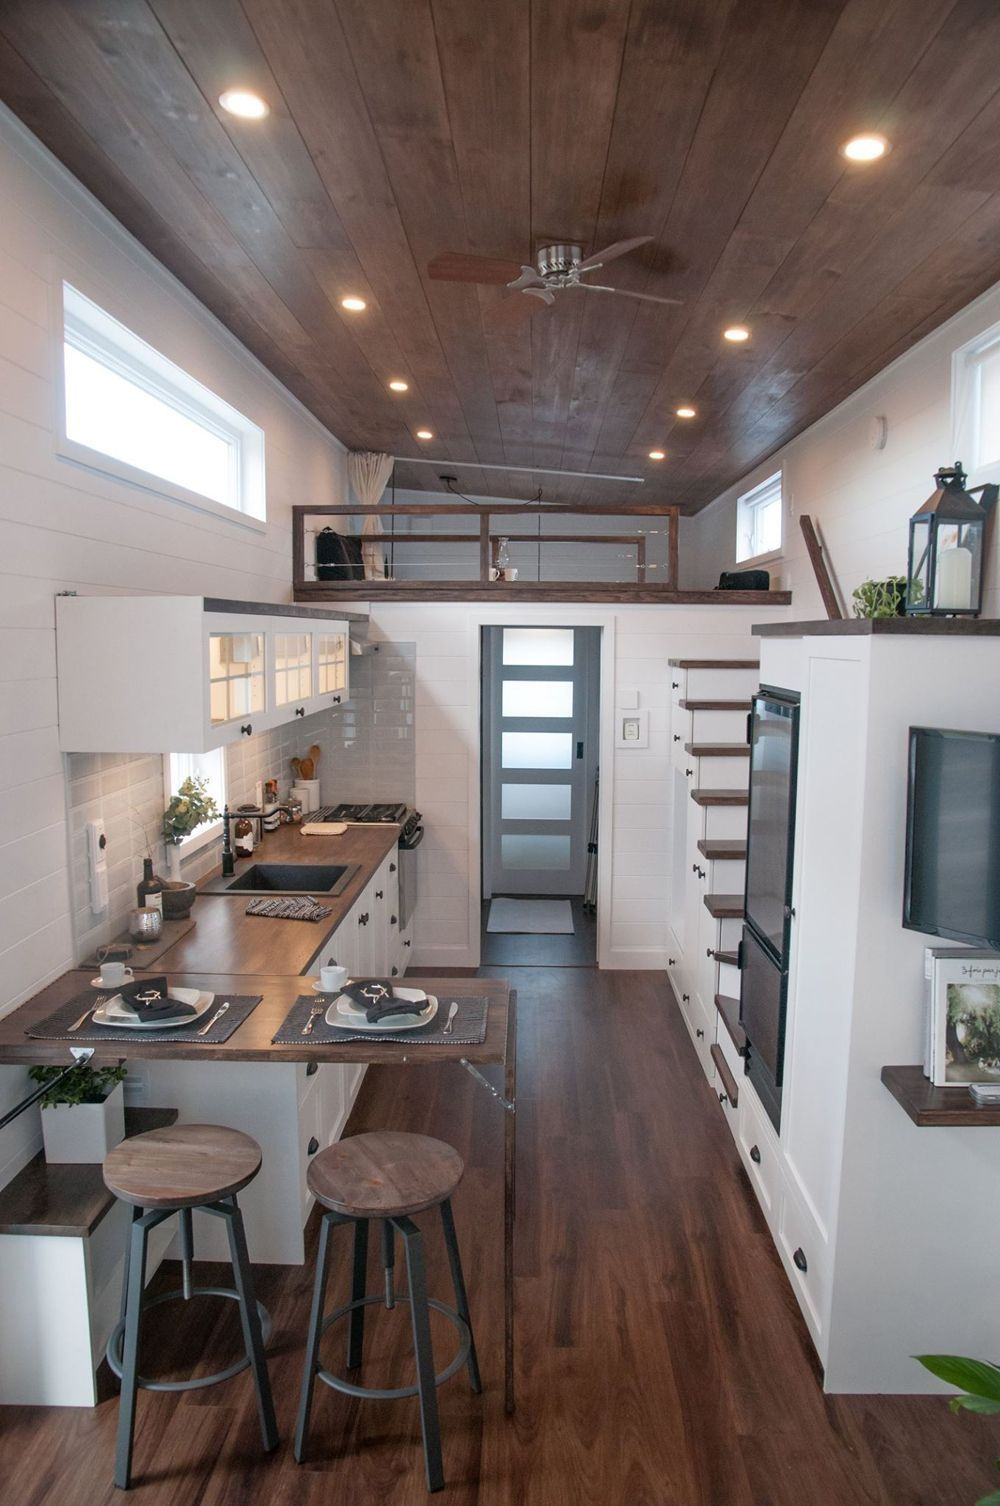 42 The Best And Unique Tiny House Design Ideas #tinyhouses